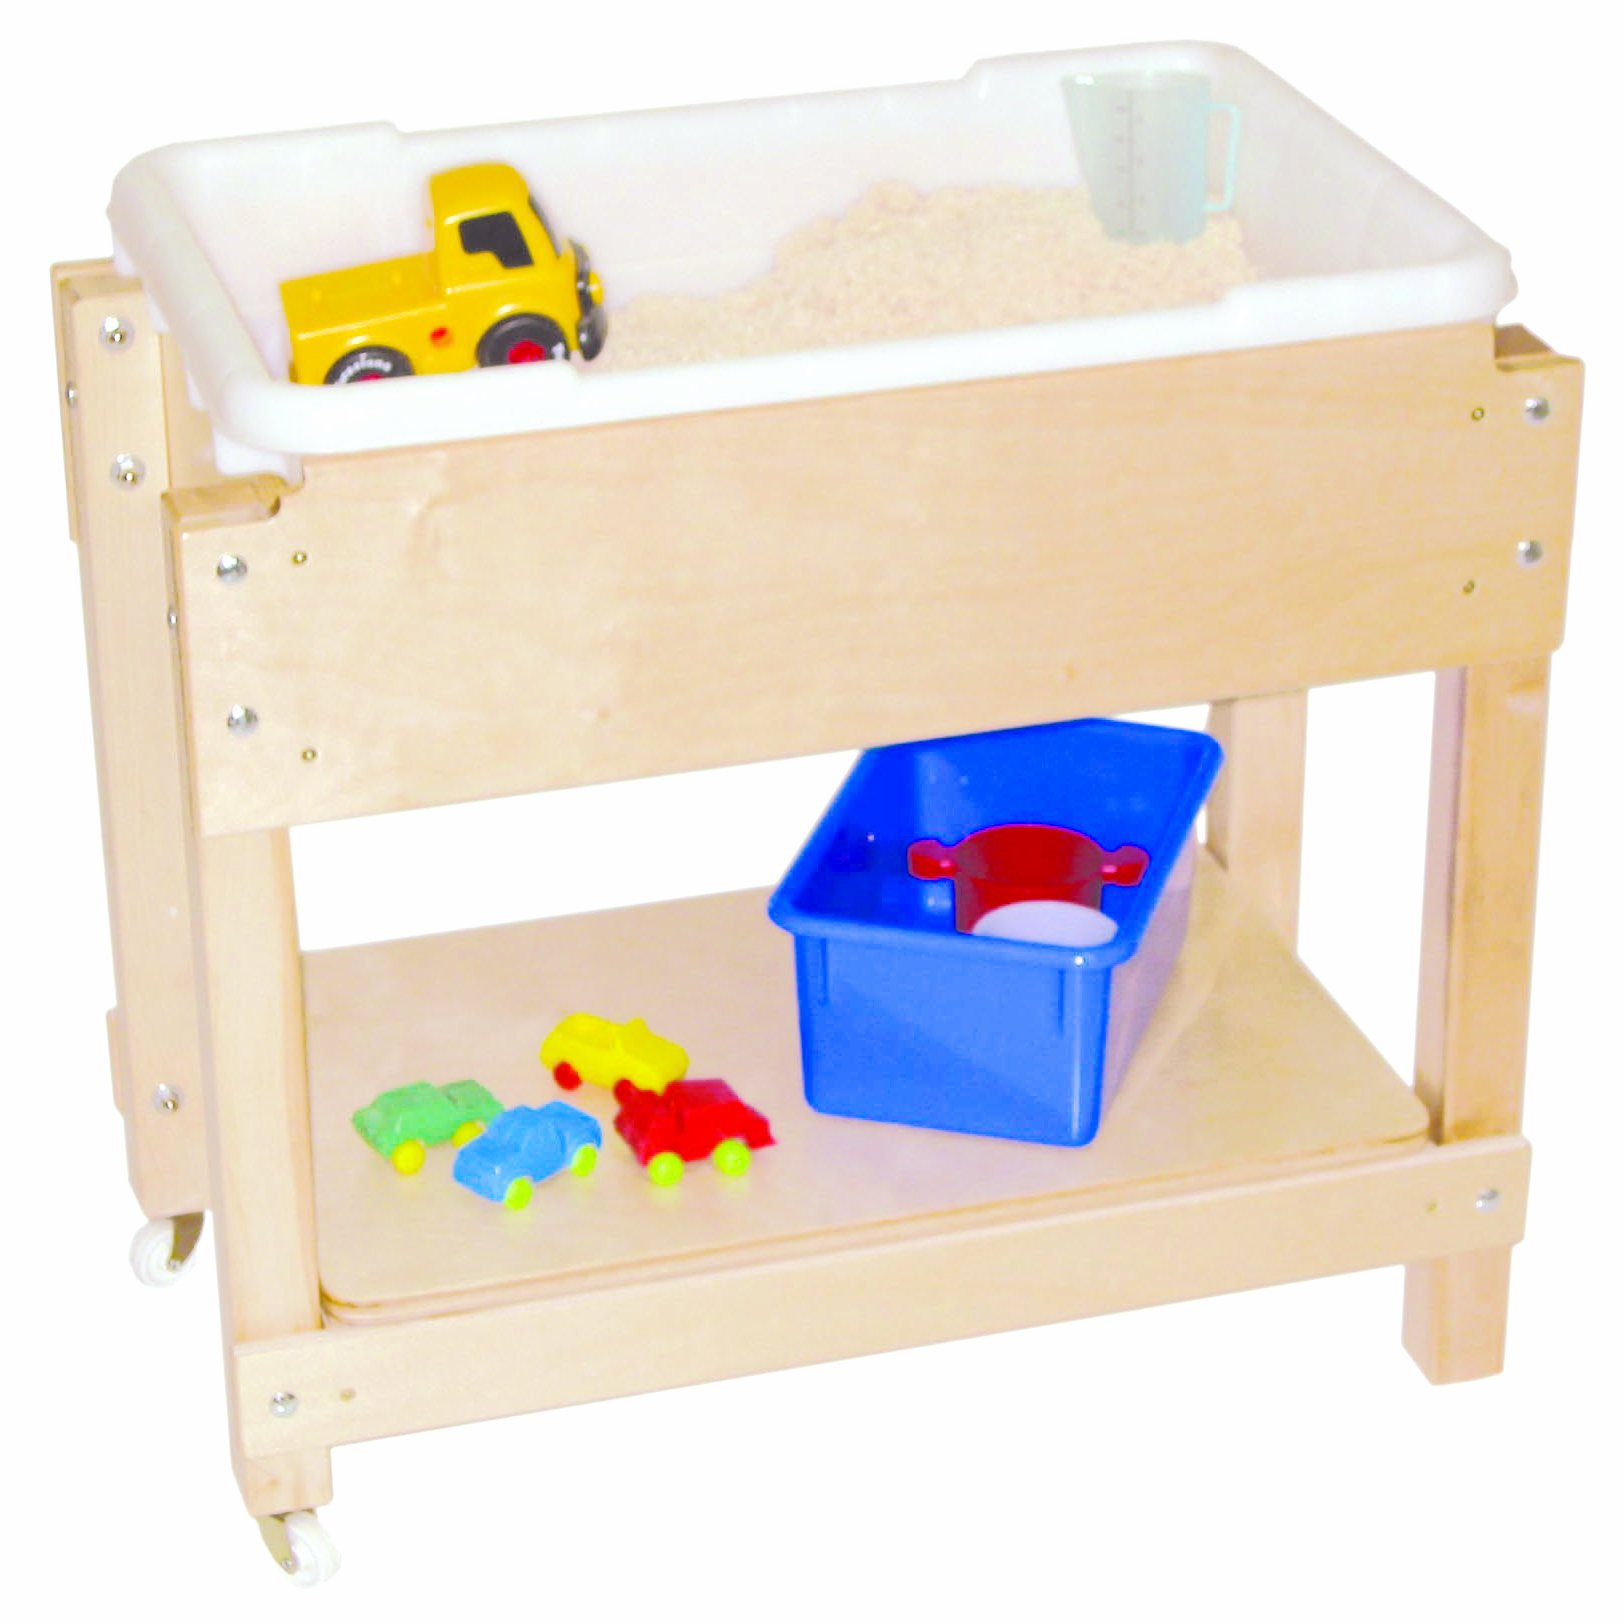 Wood Designs WD11811 Petite Sand and Water Table with Lid/Shelf, 24 x 28 x 15'' (H x W x D)